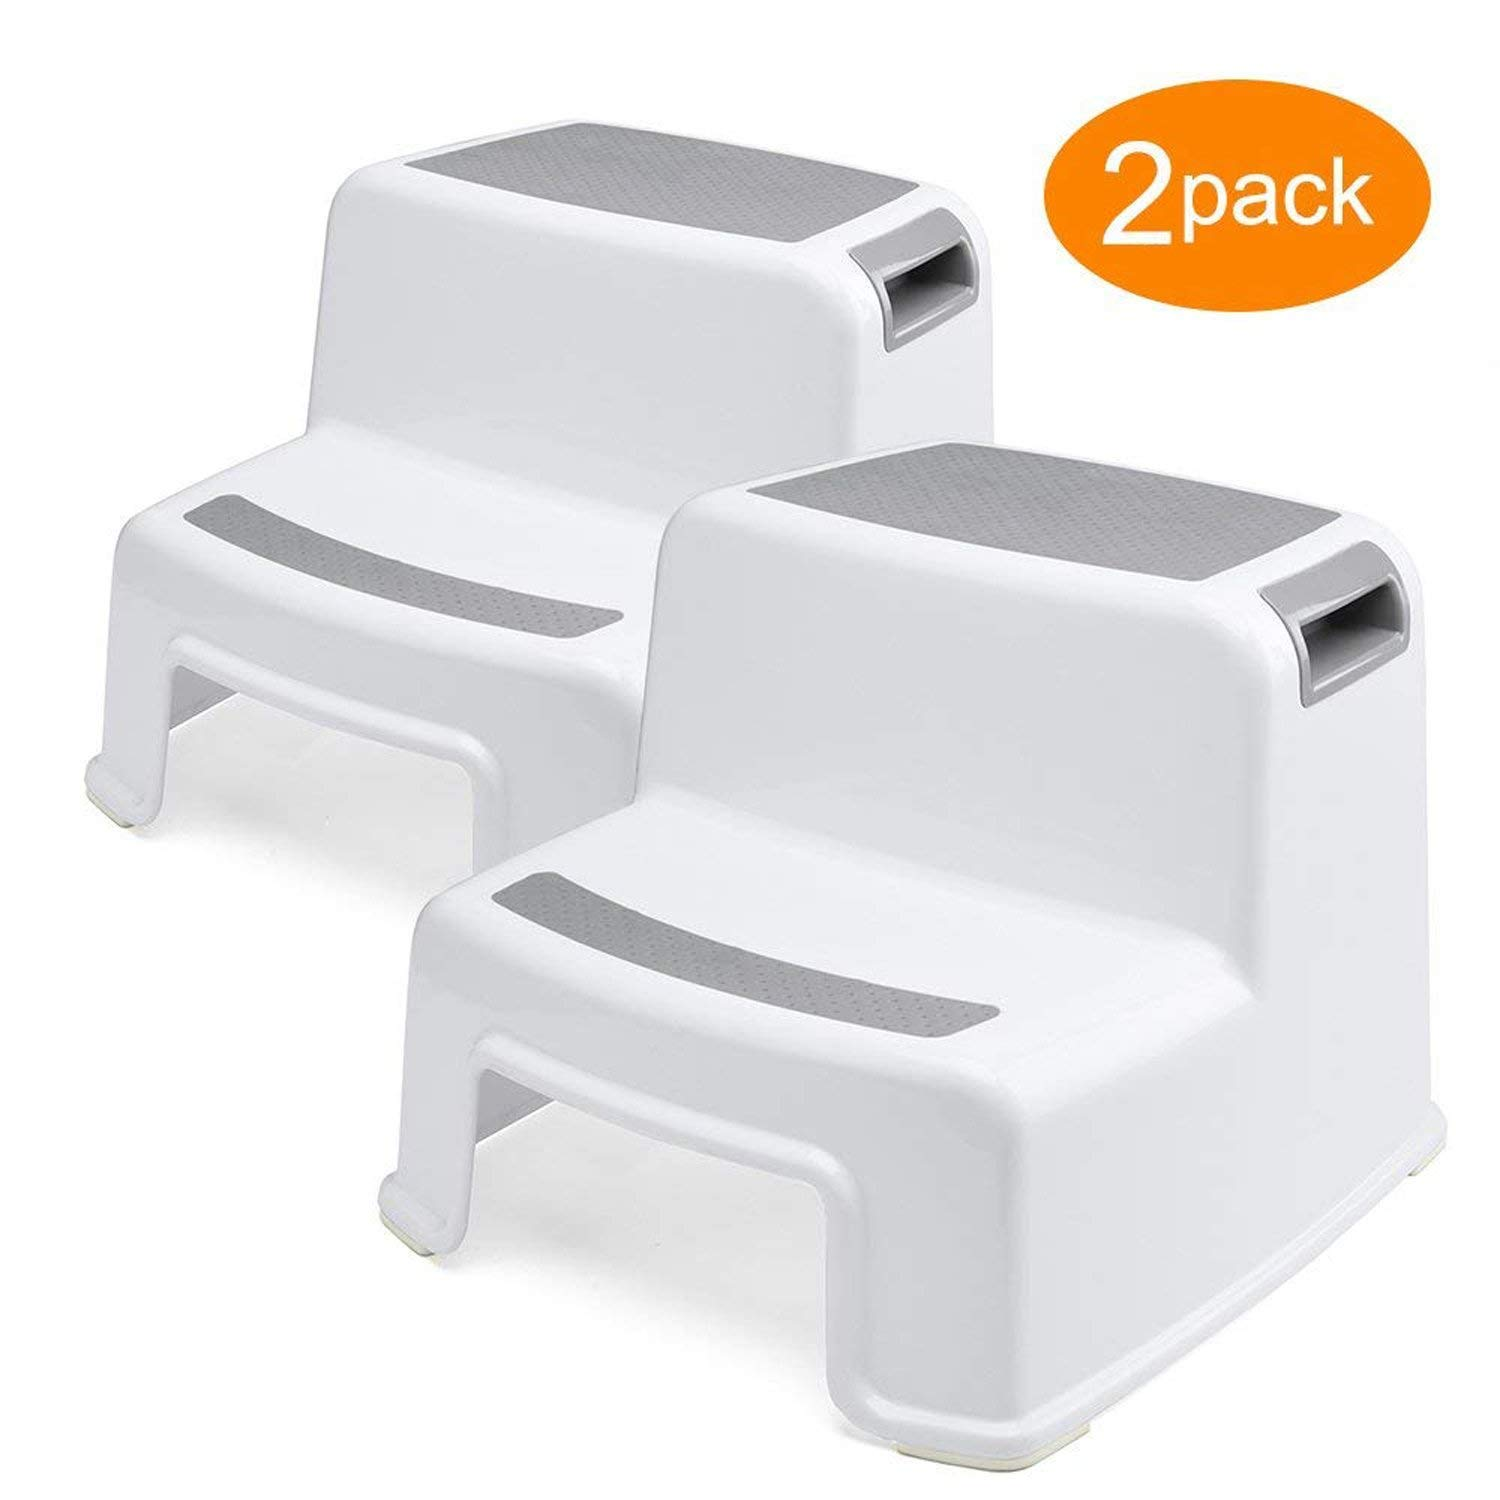 Dual Height Step Stool for Kids (2 Pack) Toddler's Stool for Toilet Potty Training and Use in The Bathroom or Kitchen Versatile Two-Step Design for Growing Children Soft-Grip Steps Provide Comfort Mobay MB-JTD-2-GRAY